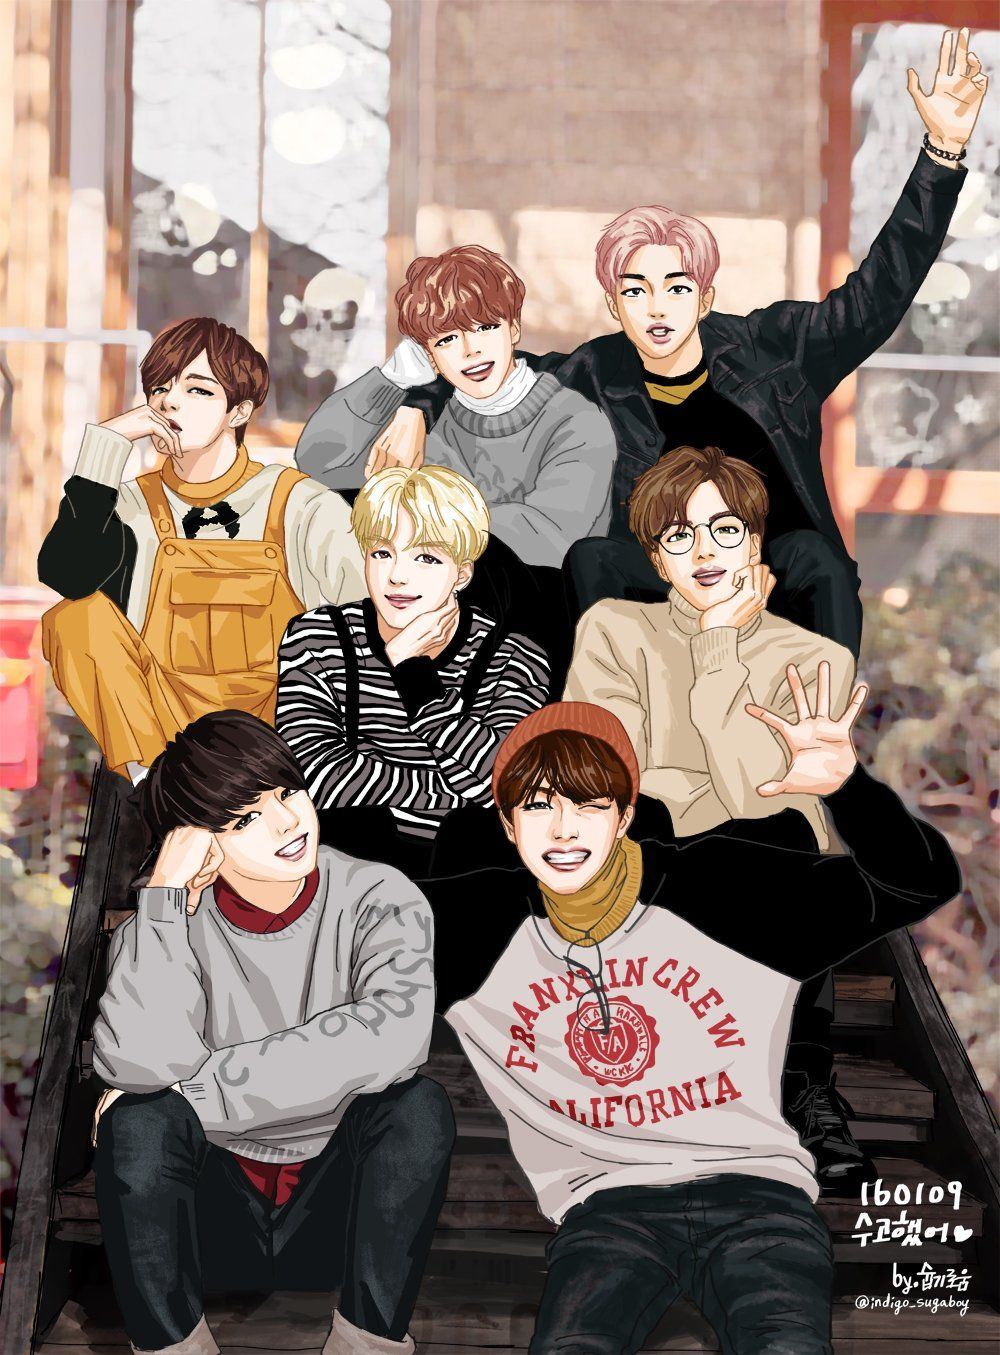 This is so amazing! This is one of my fav drawings of BTS